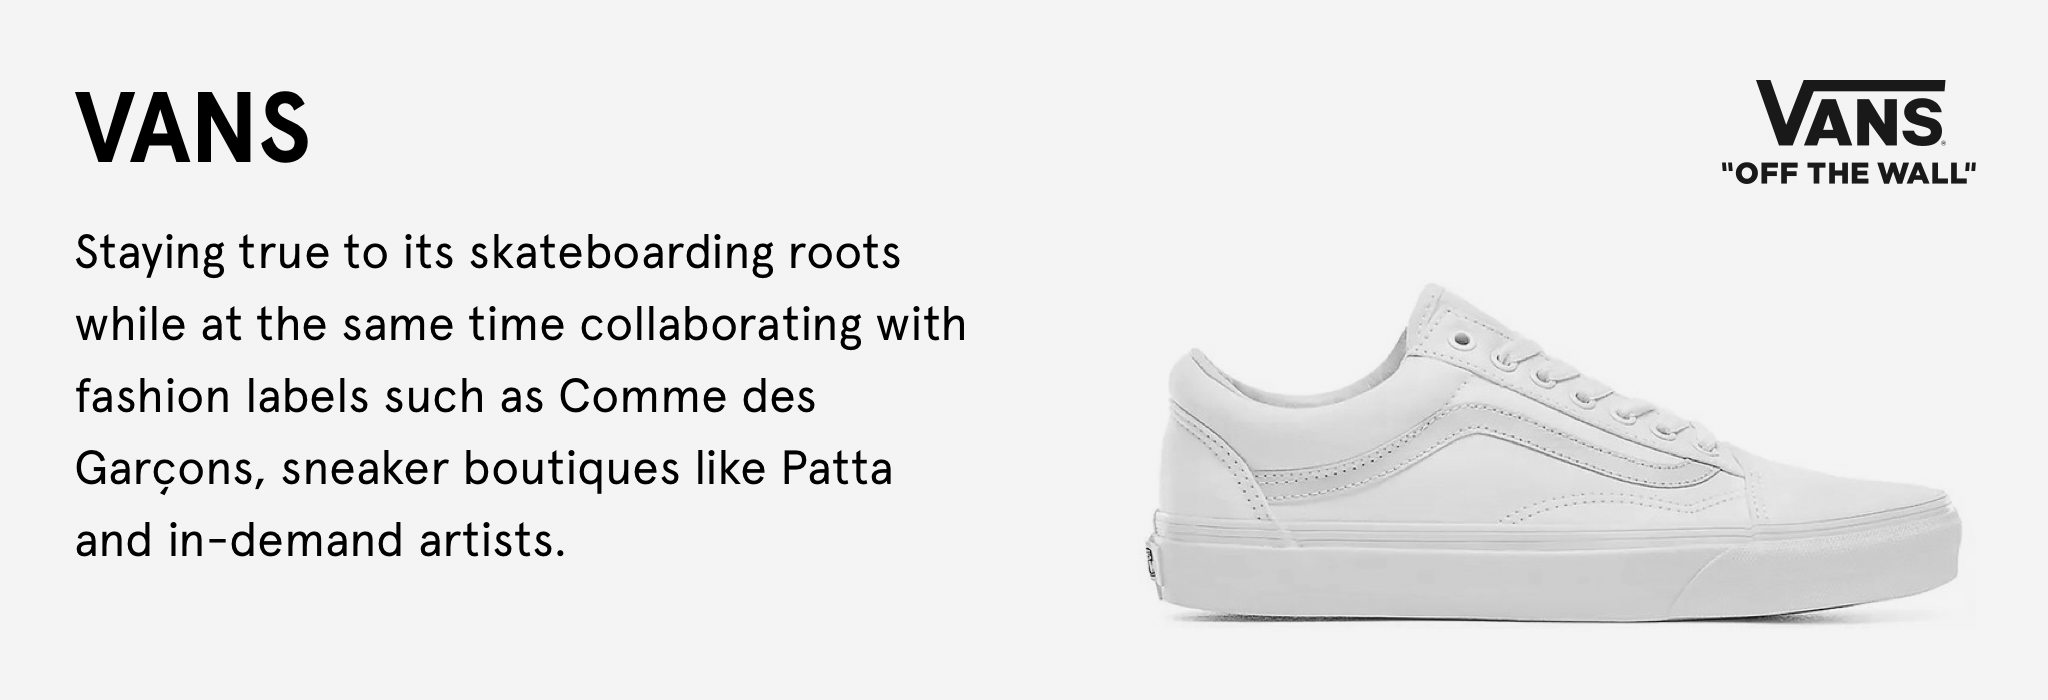 Staying true to its skateboarding roots while at the same time collaborating with fashion labels such as Comme des Garçons, sneaker boutiques like Patta and in-demand artists.